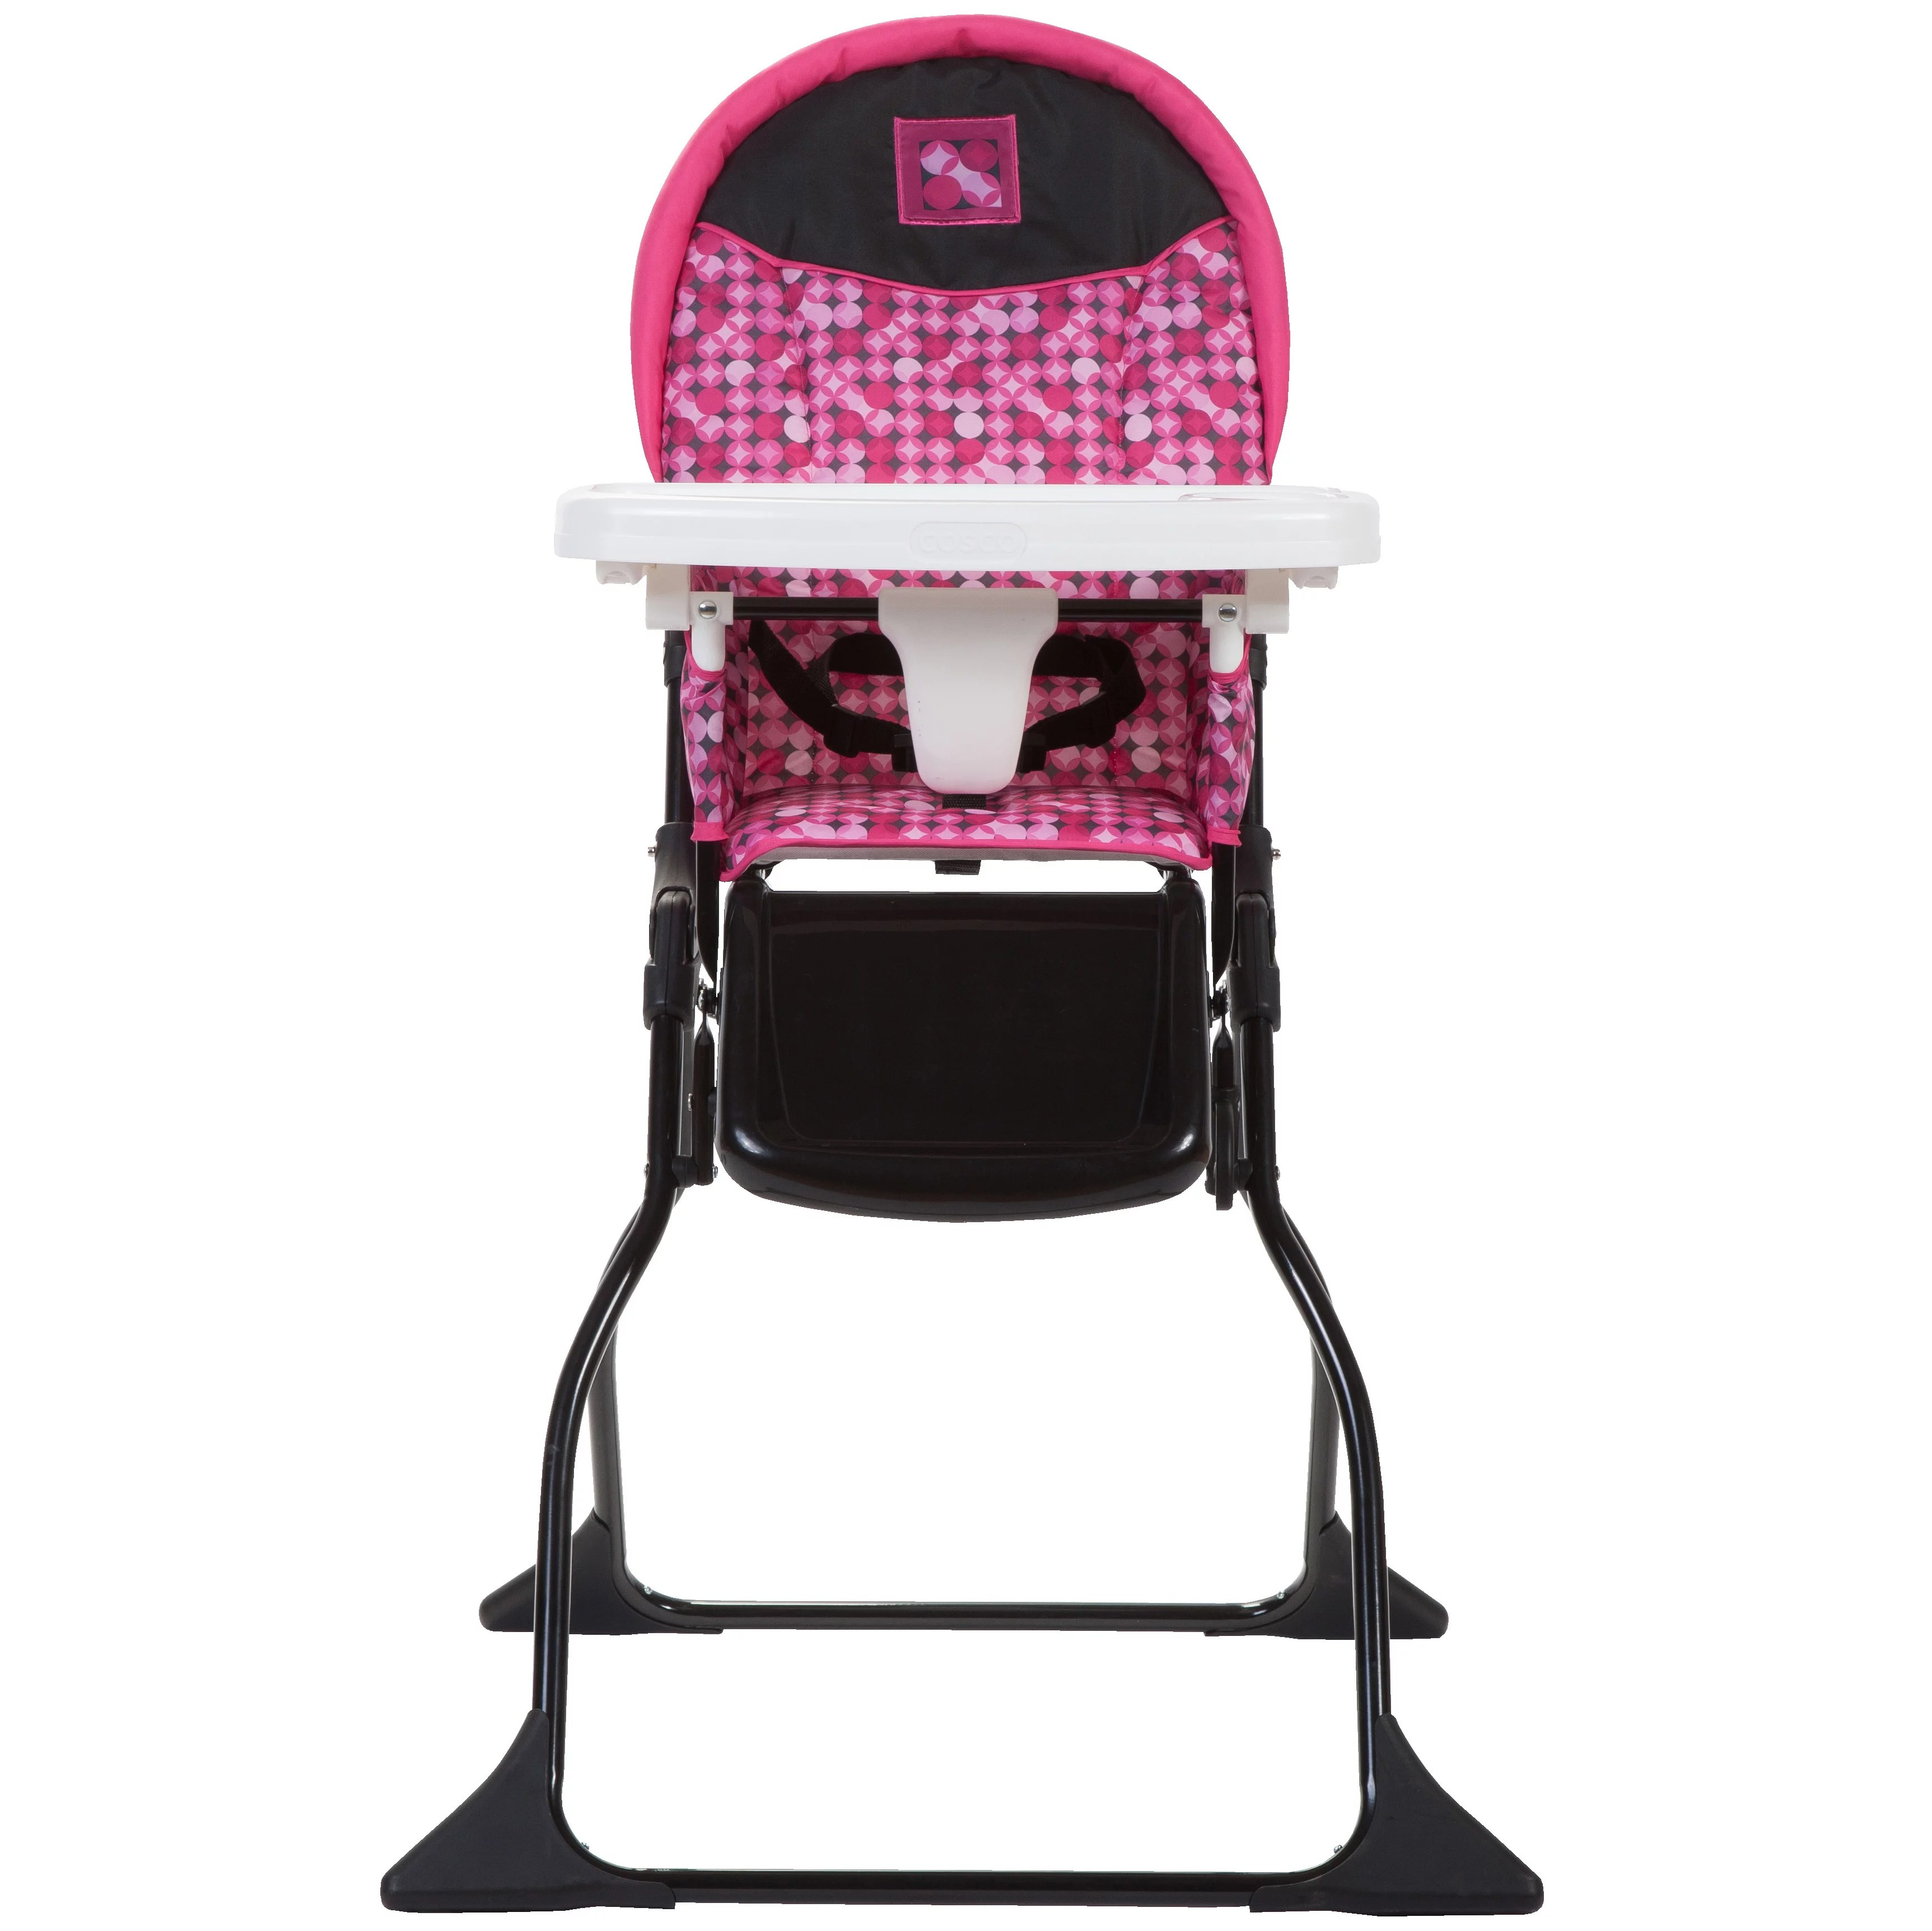 walmart travel high chair dining seat cushions target cosco disco ball berry and playard value set